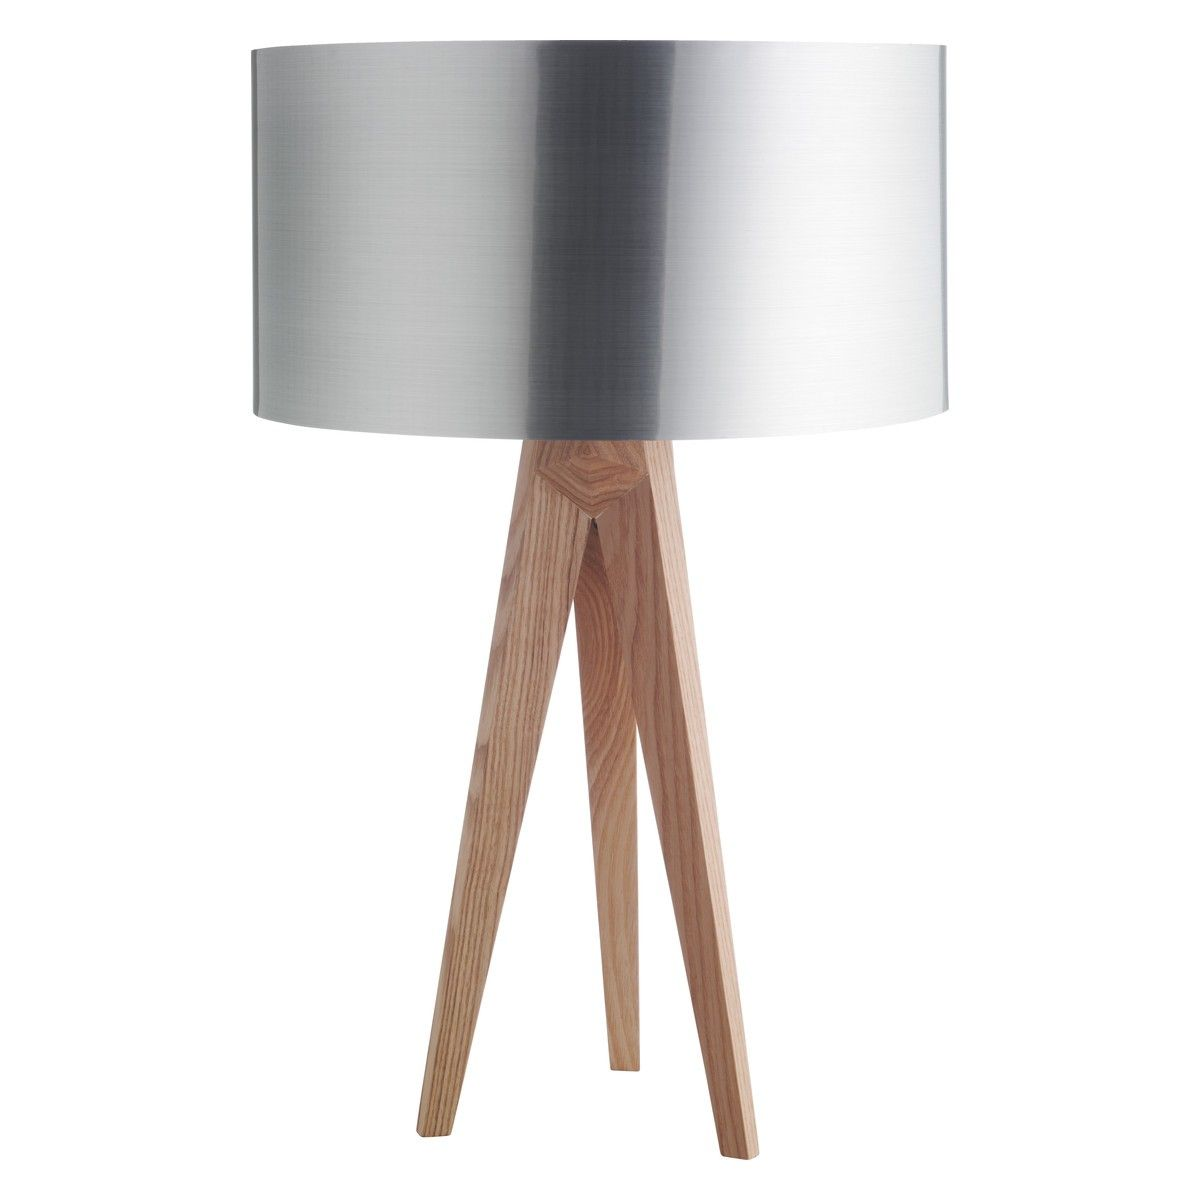 Myndaniurstaa fyrir tripod lamps heimili pinterest tripod make an impact with this tripod table lamp base with tapered legs crafted from solid ash in a clear lacquer finish buy now at habitat uk aloadofball Images